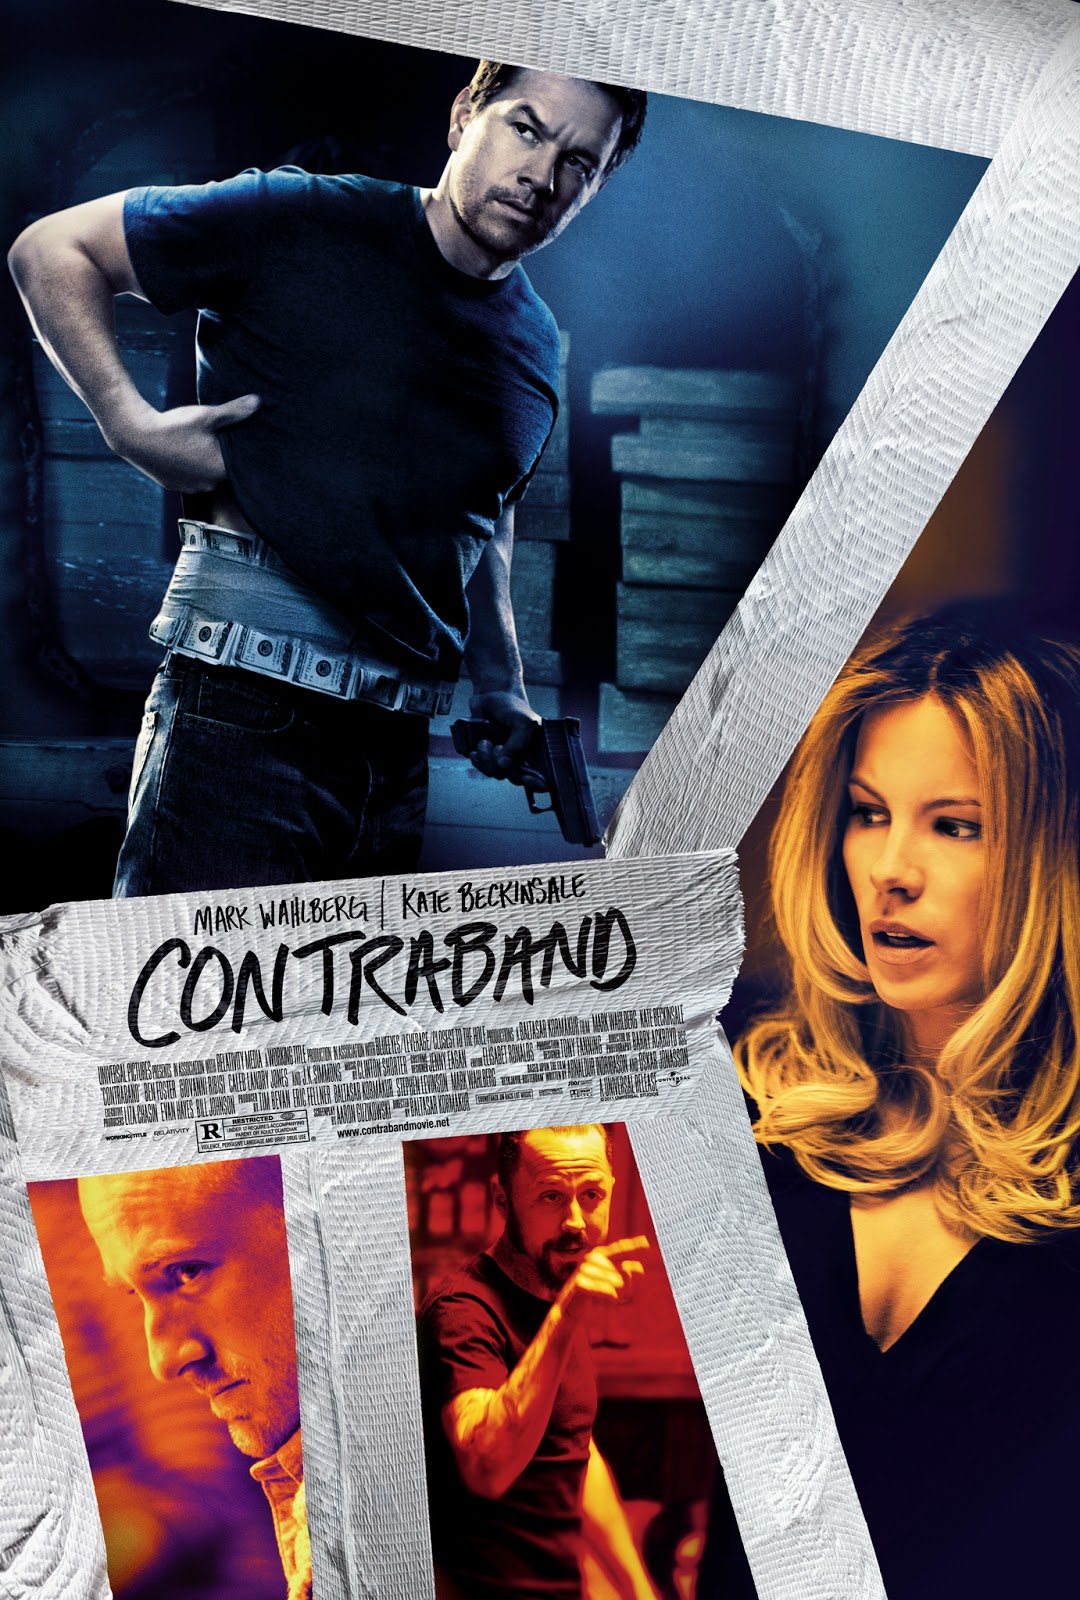 contraband full movie in hindi dubbed